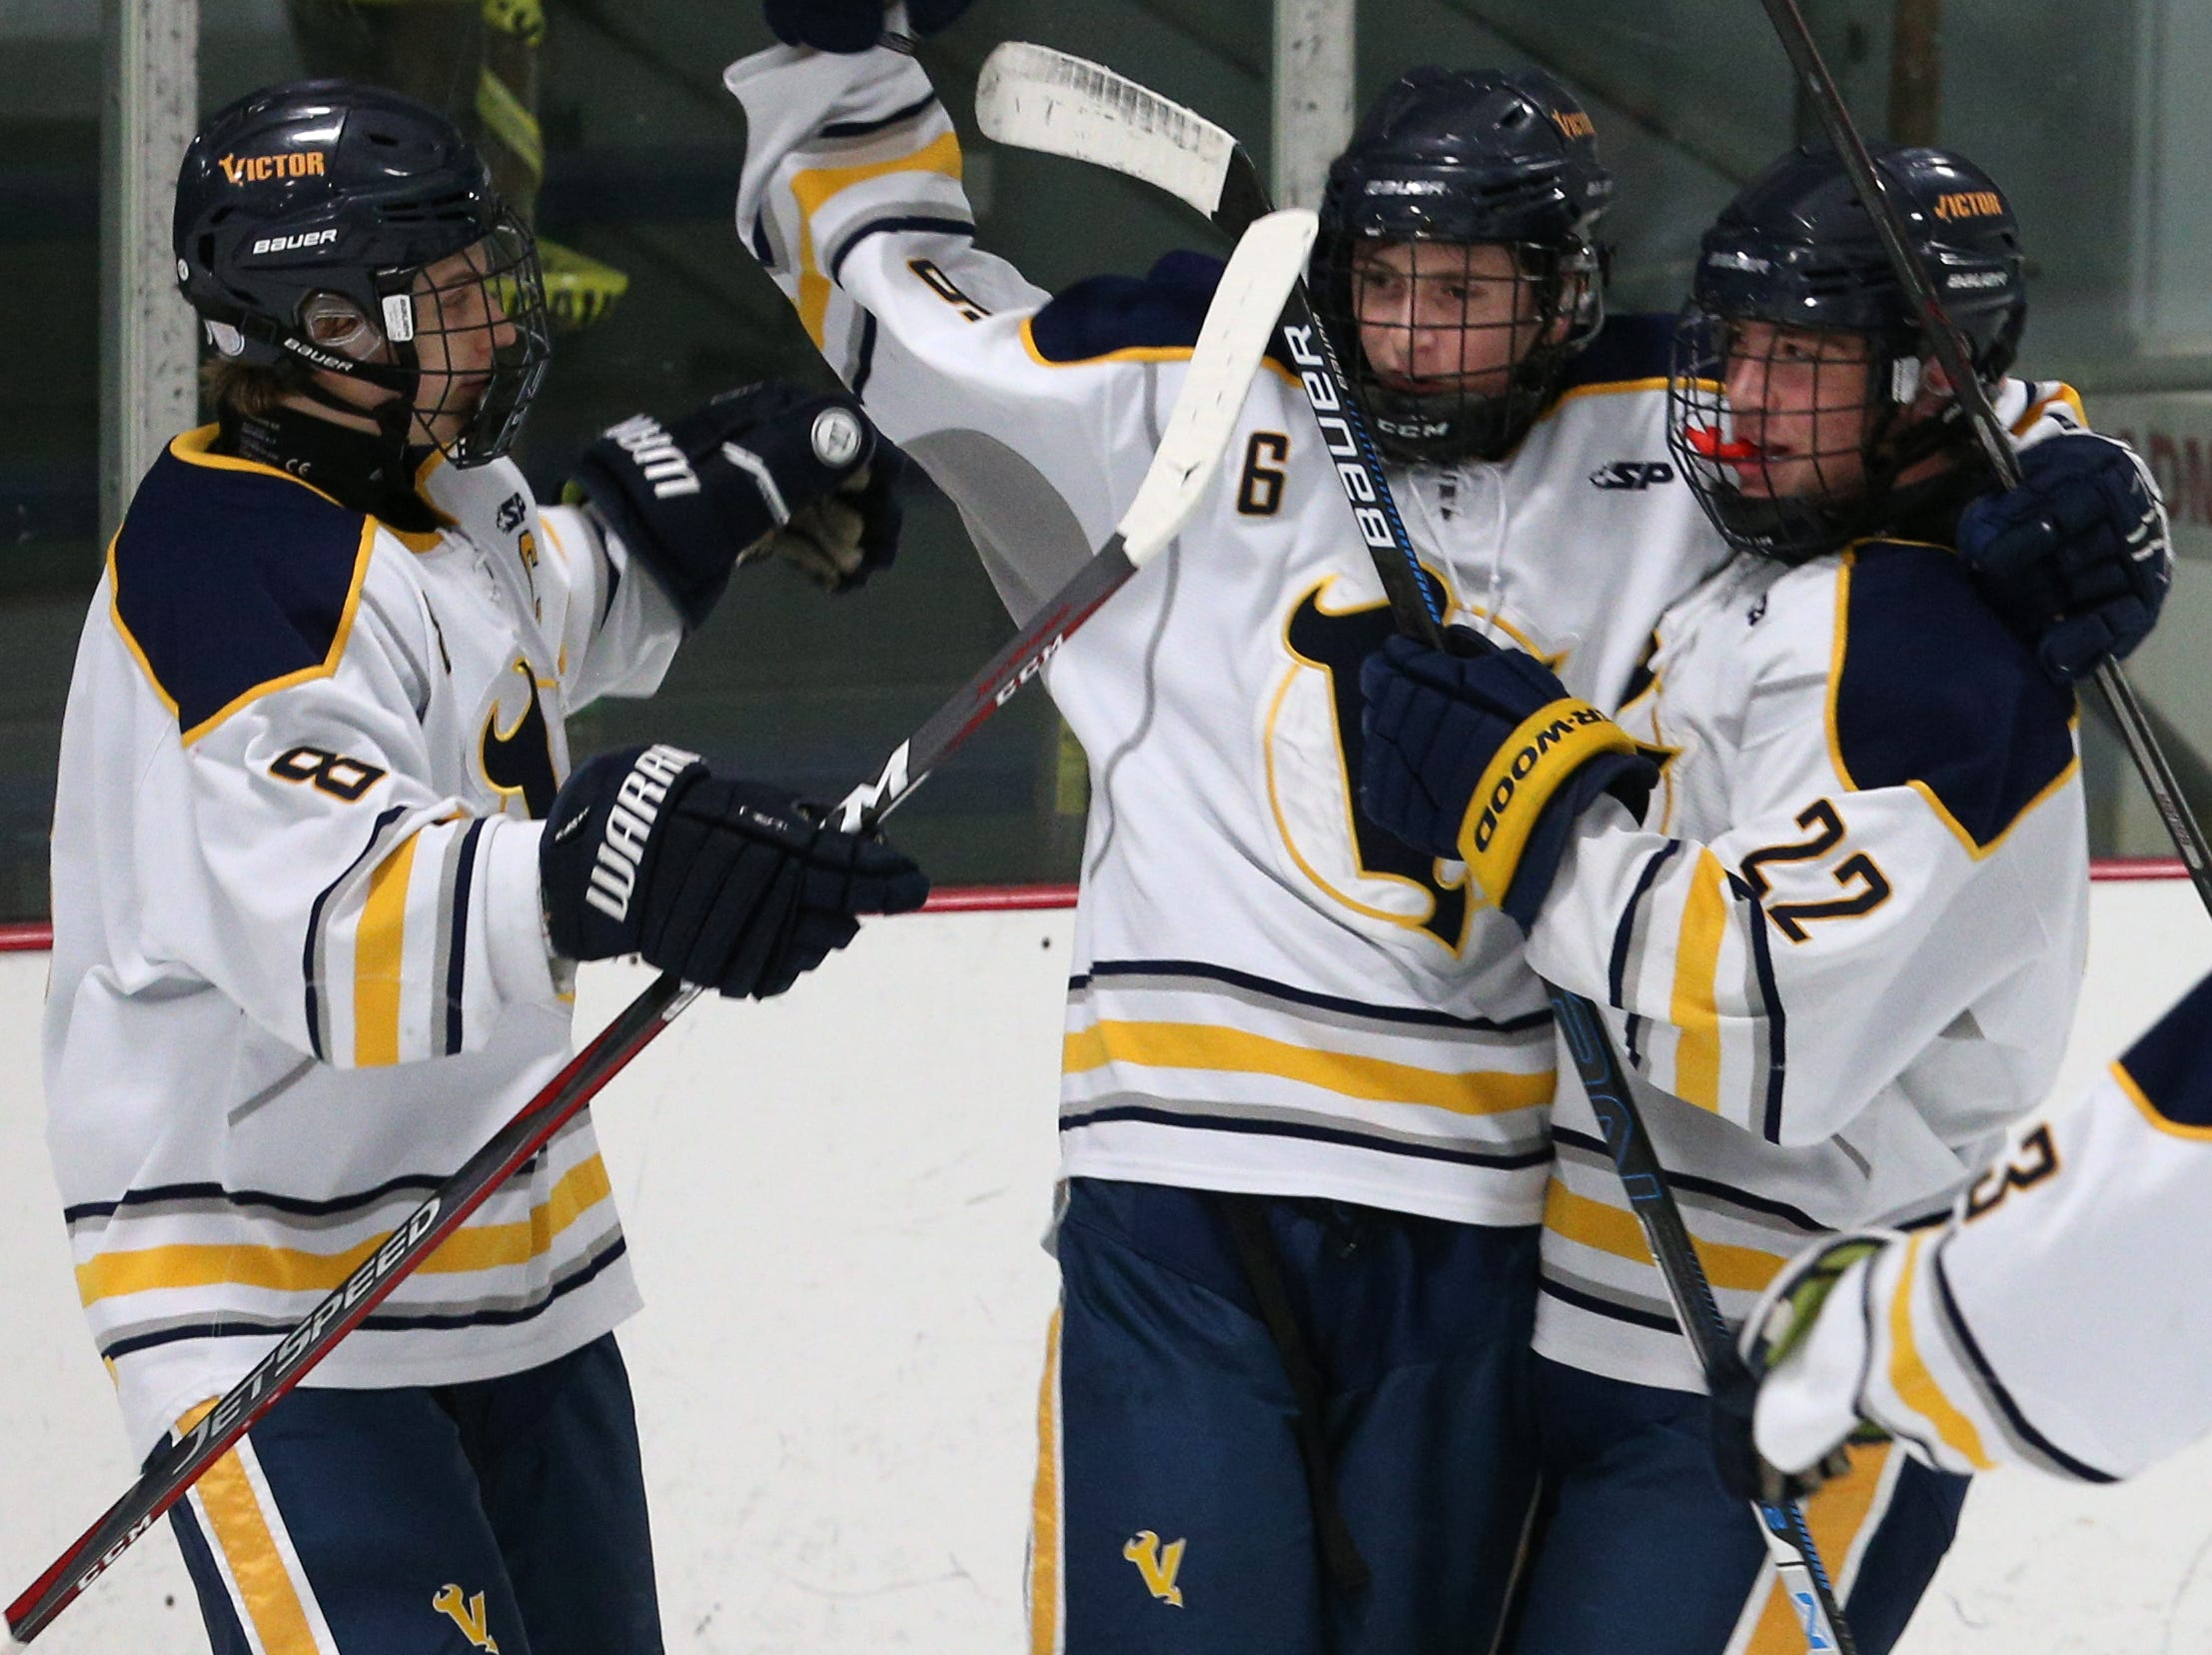 Victor #6 Steven Armstrong celebrates his goal against Pittsford.